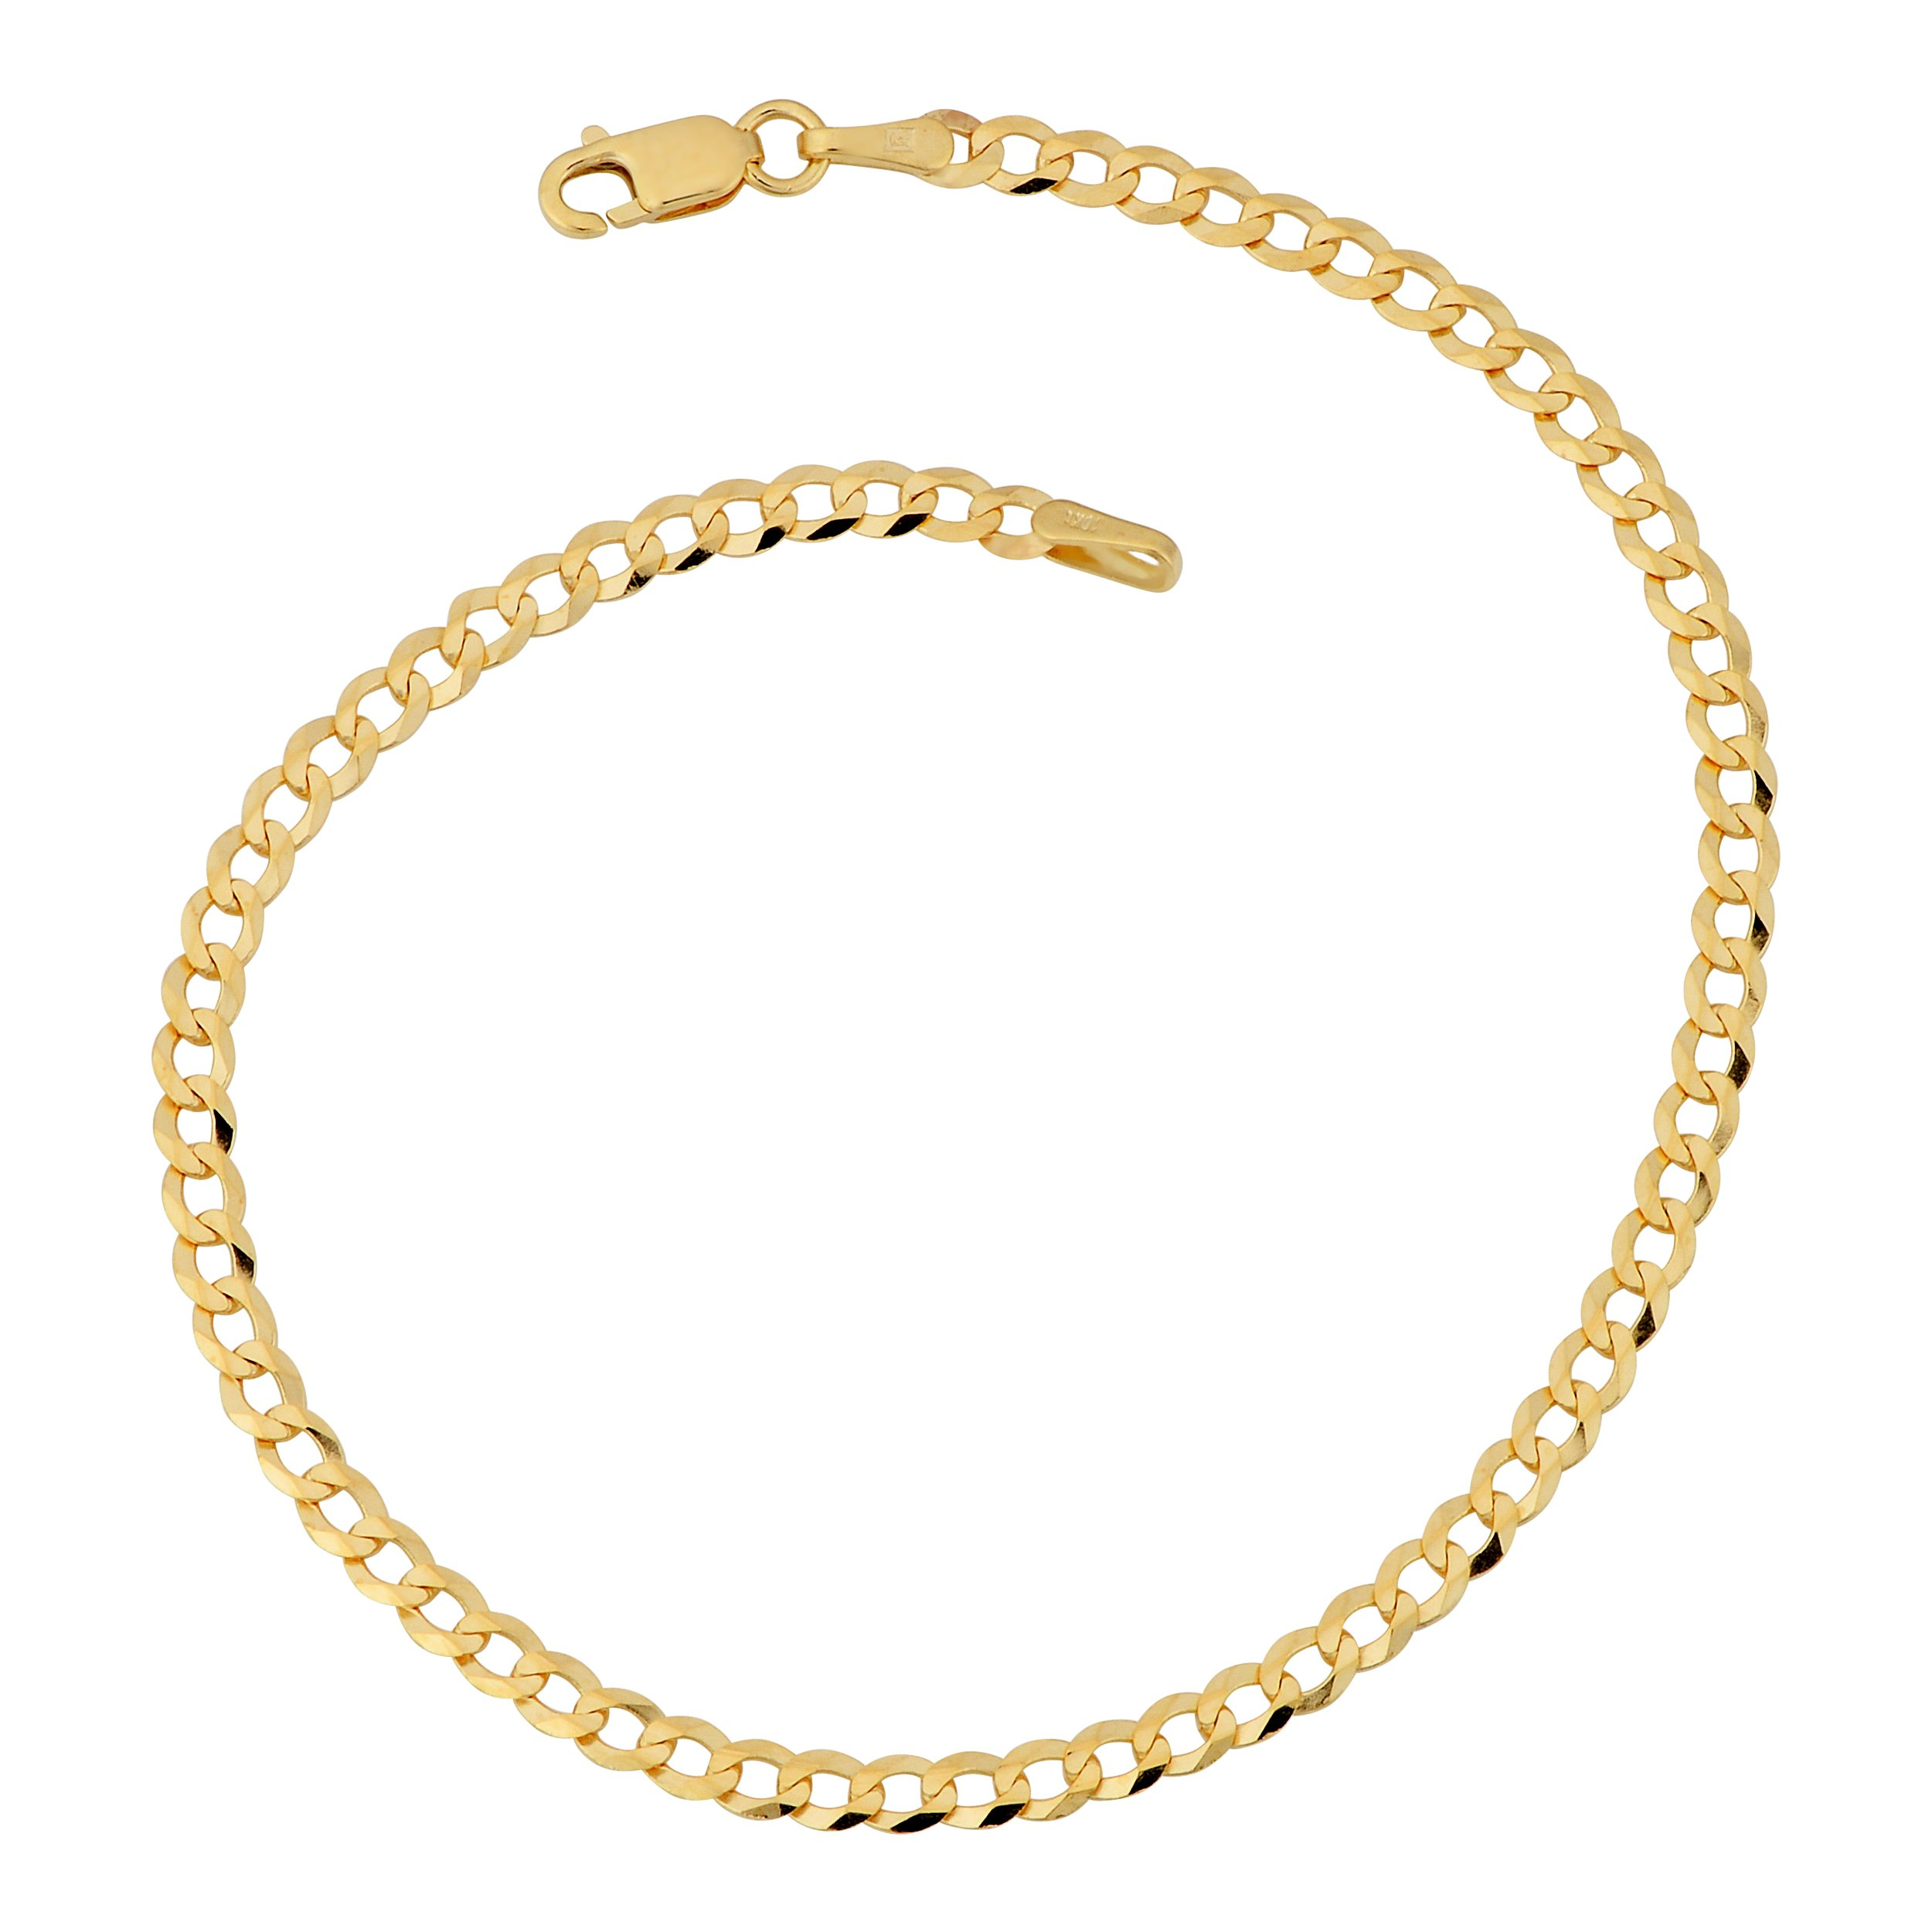 Kooljewelry 10k Yellow Gold 3 mm High Polish Curb Link Anklet